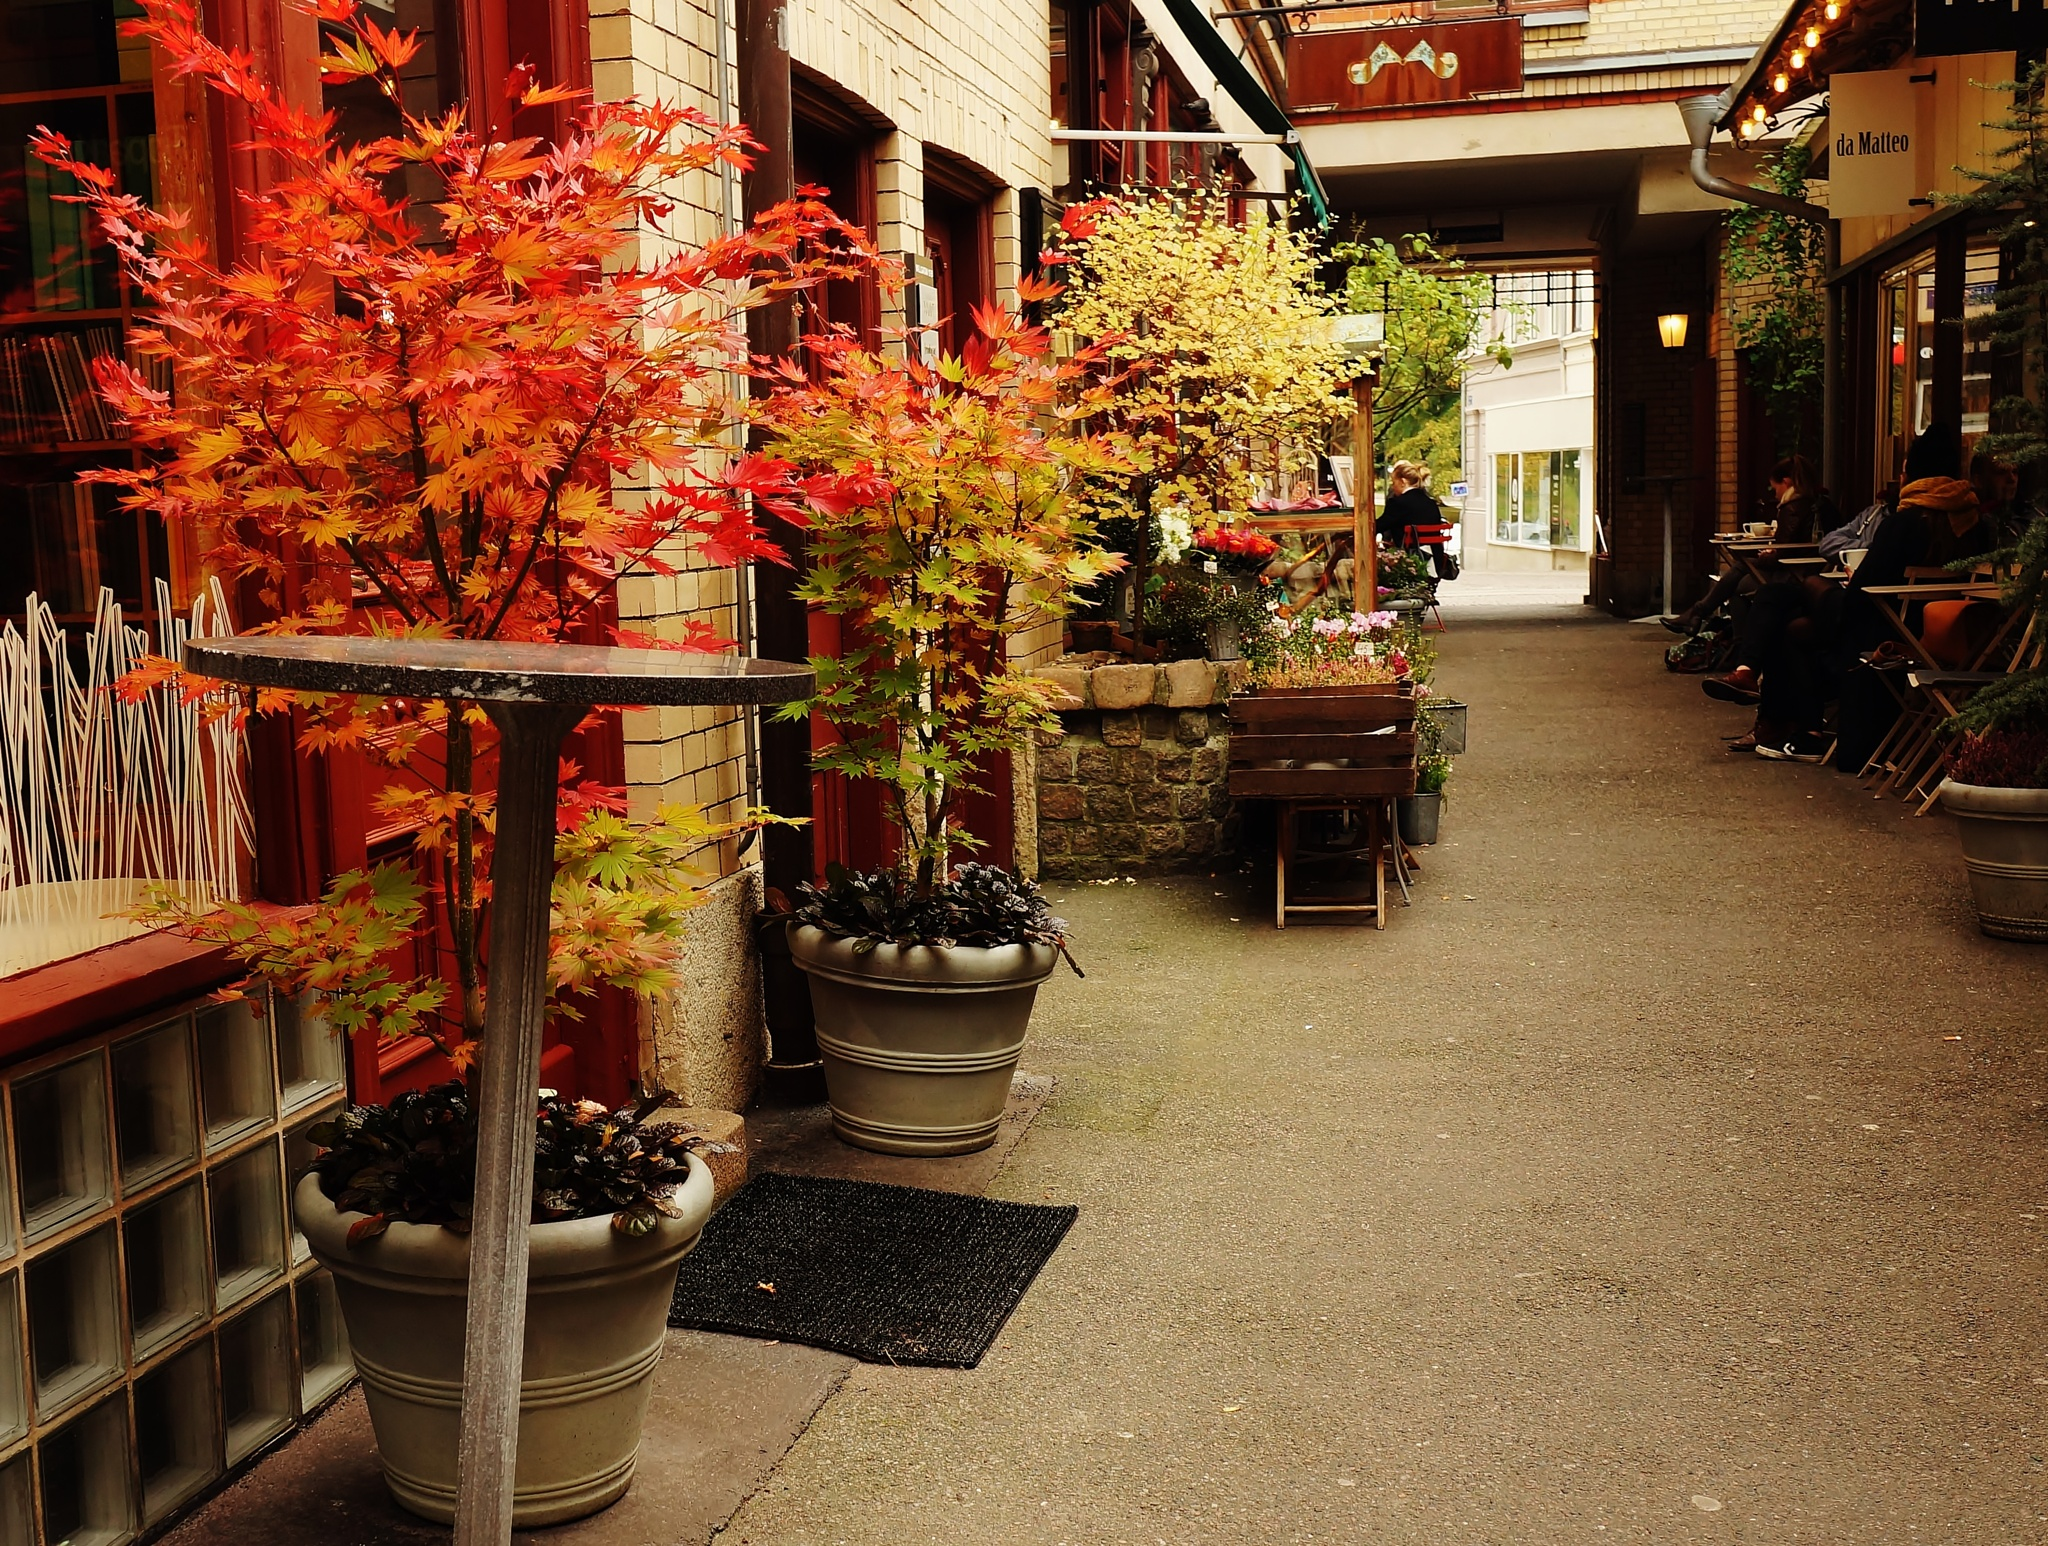 Autumn colours at the city galleria by rolf persson